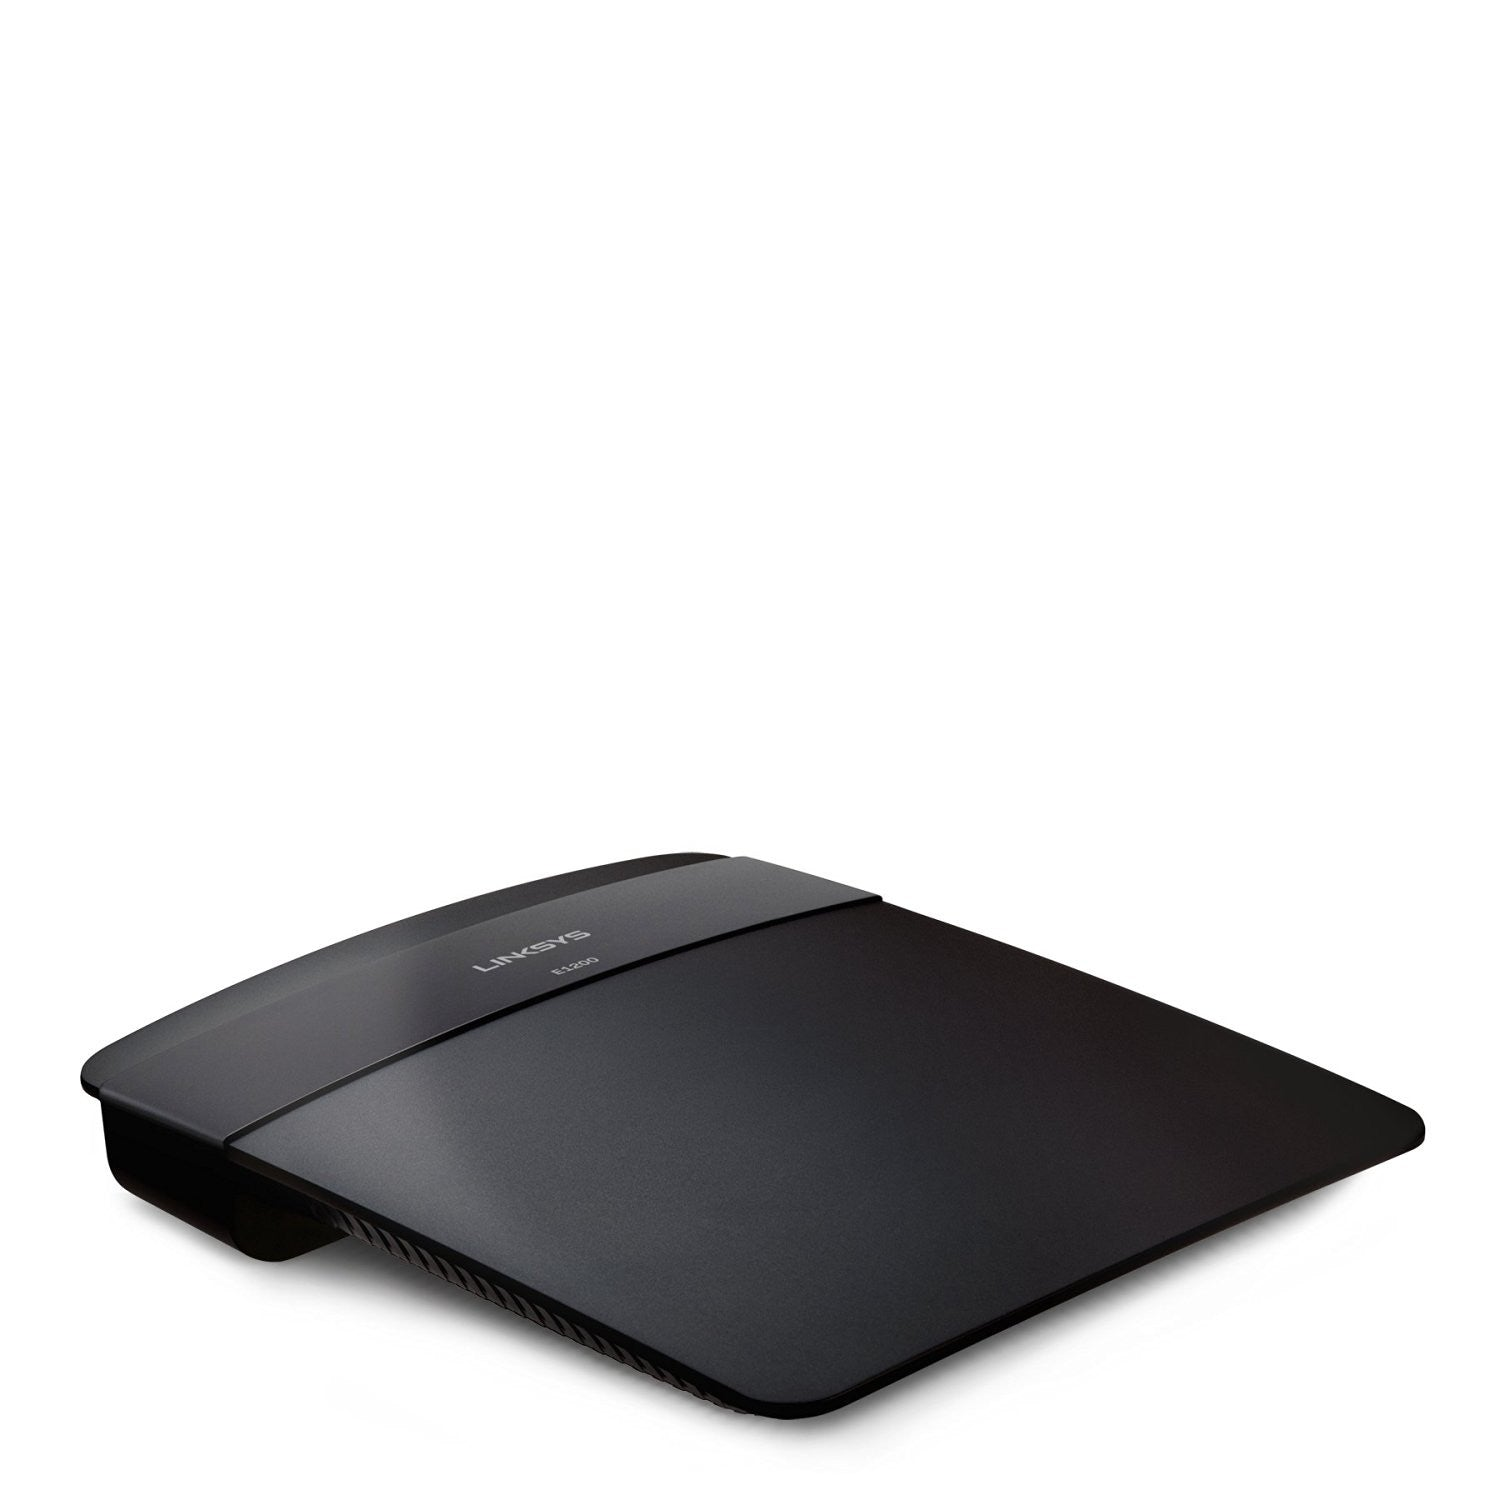 Express Router Linksys E1200 N300 Flashed with DD-WRT Firmware